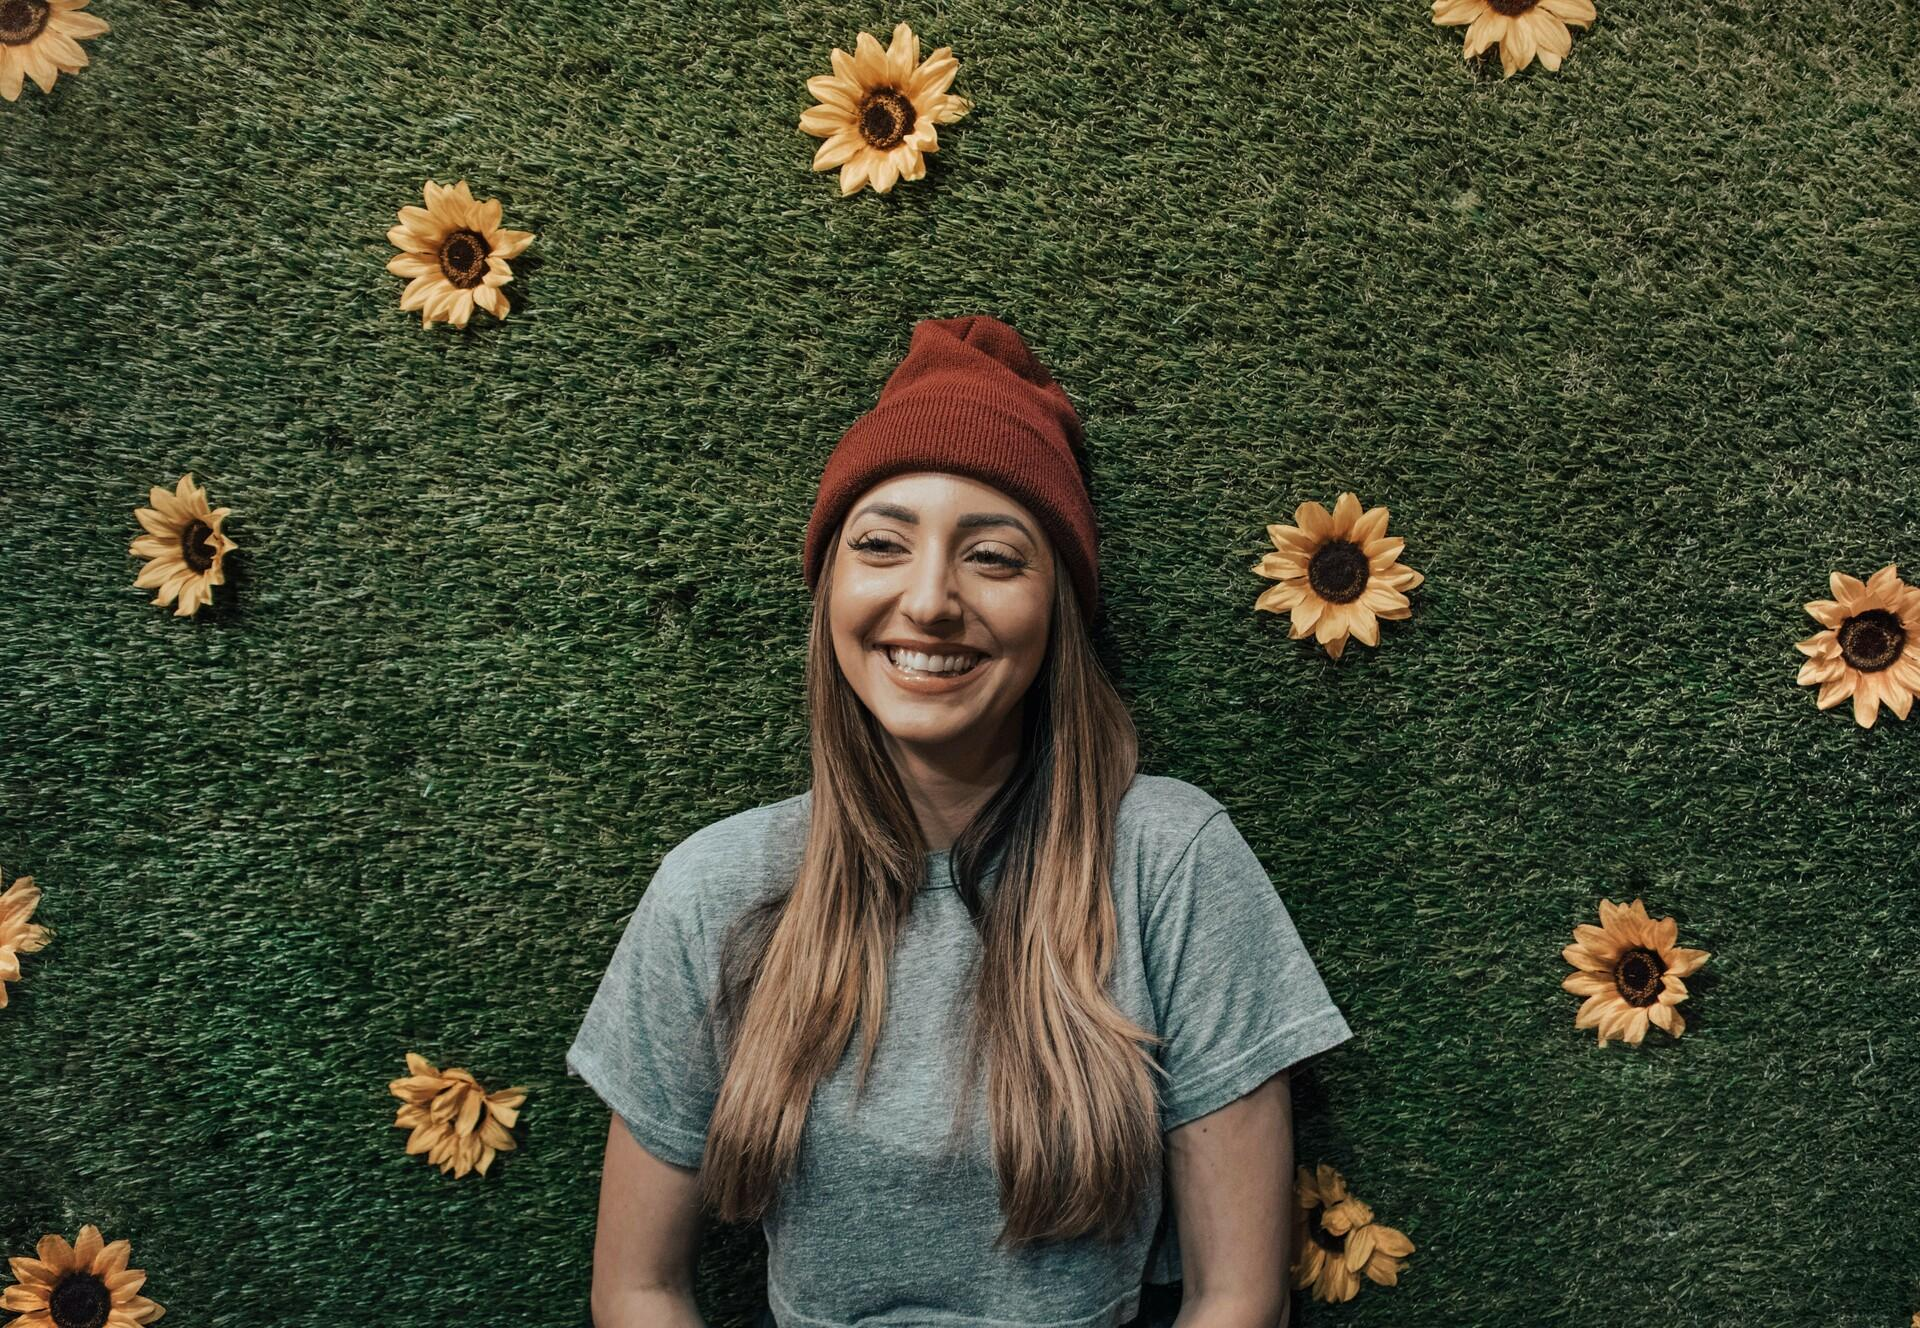 A happy woman looking at the camera surrounded by sunflowers